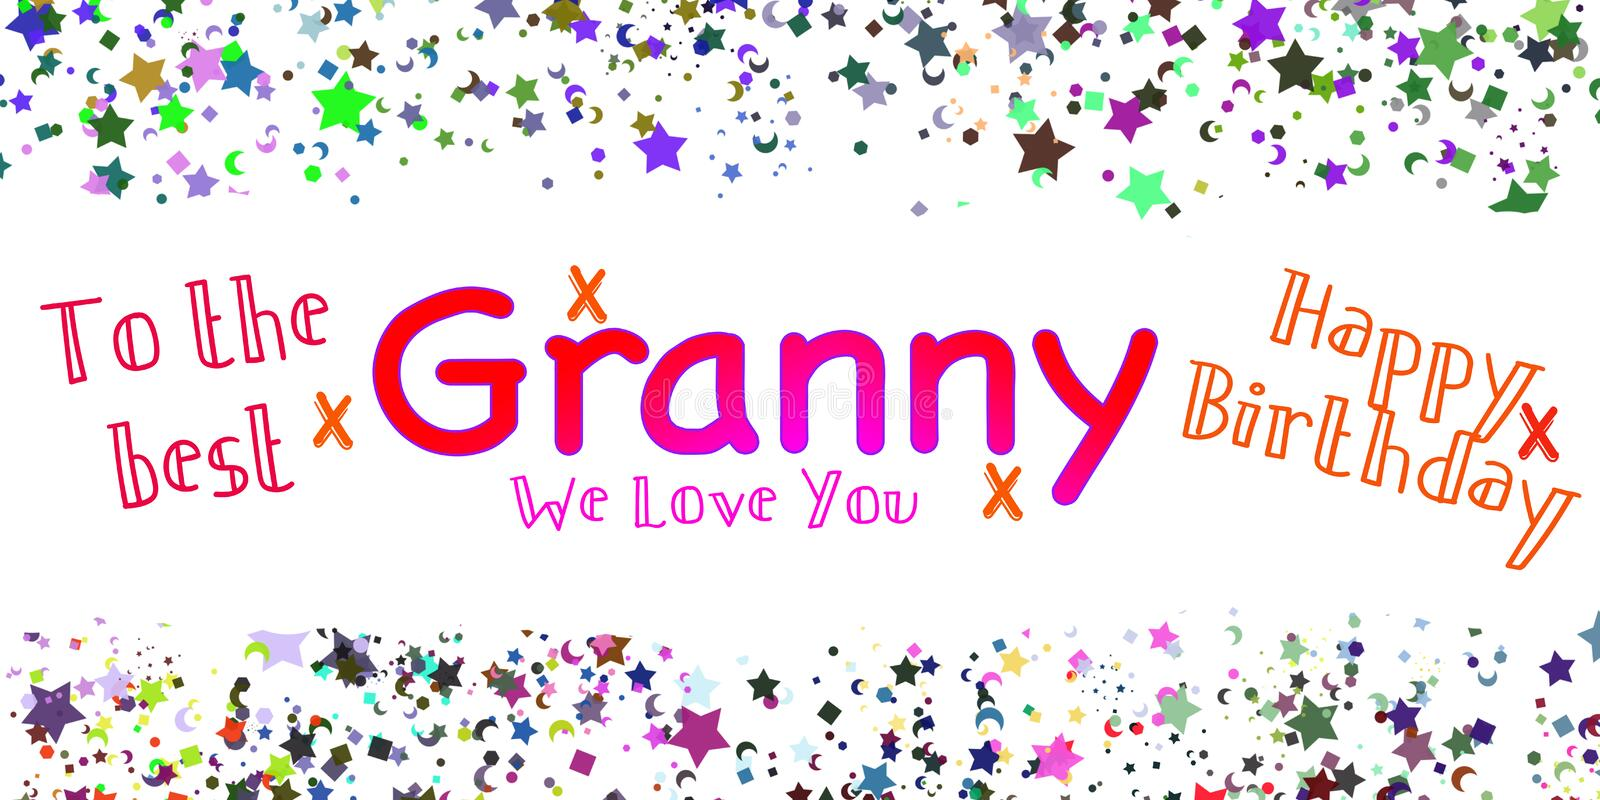 Happy Birthday Granny Stock Illustrations 196 Happy Birthday Granny Stock Illustrations Vectors Clipart Dreamstime